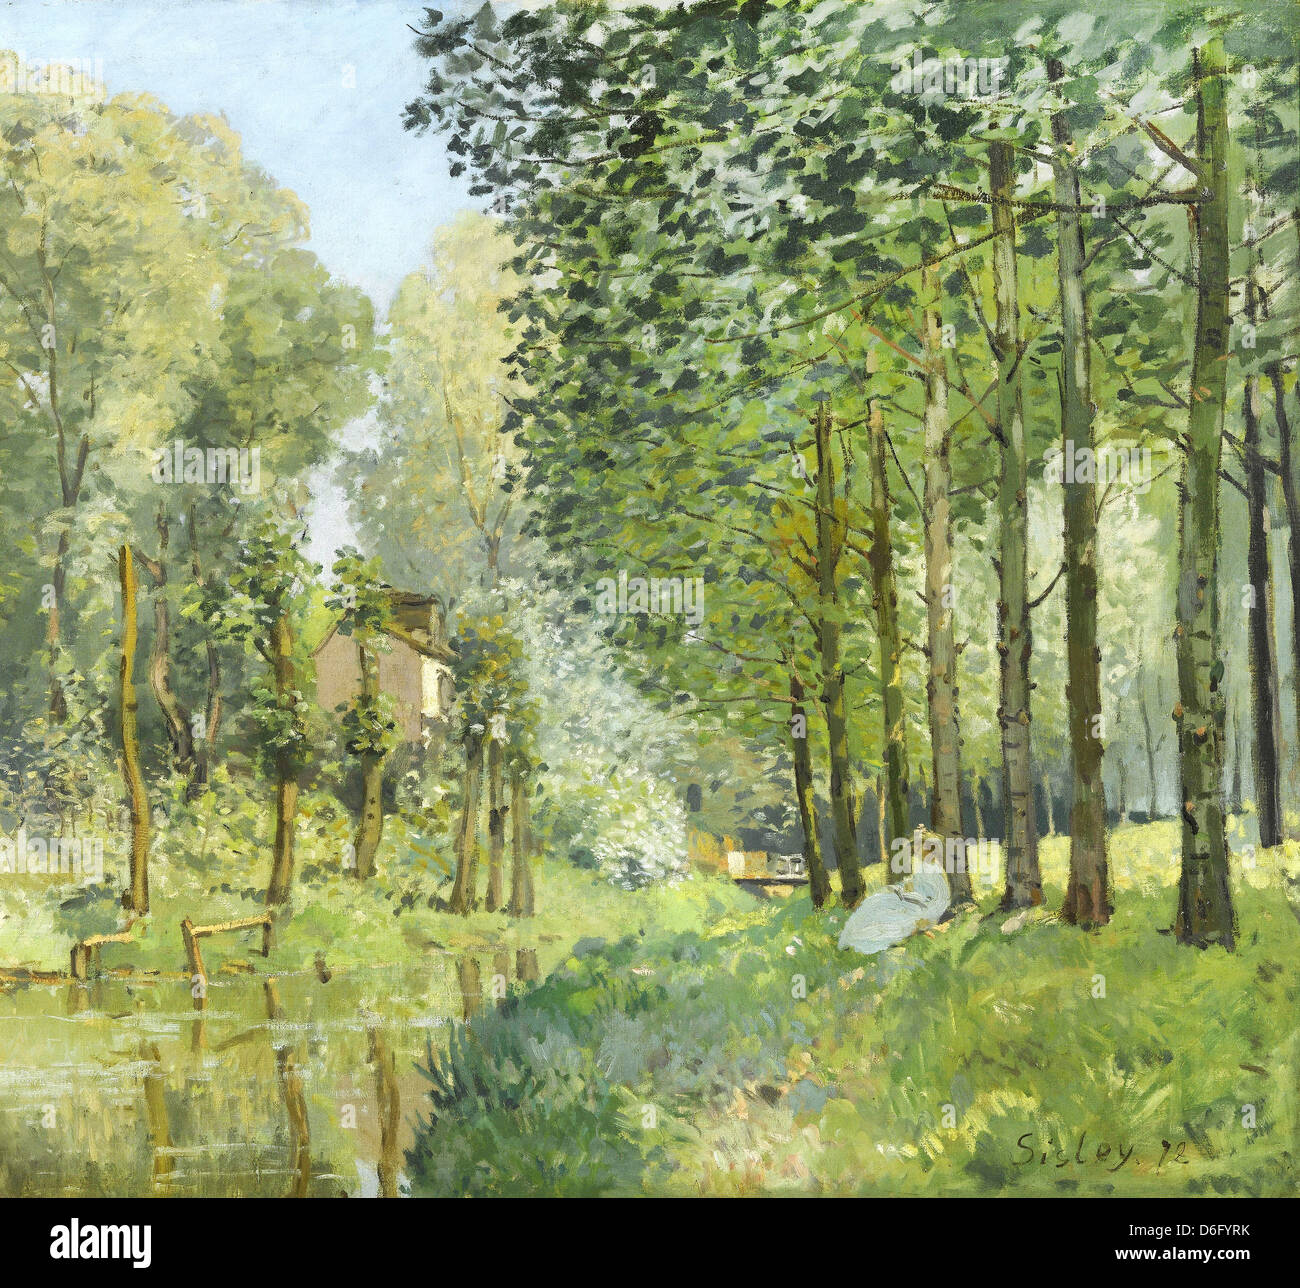 Alfred Sisley, Rest along the Stream. Edge of the Wood 1878 Oil on canvas. Musée d'Orsay, Paris - Stock Image